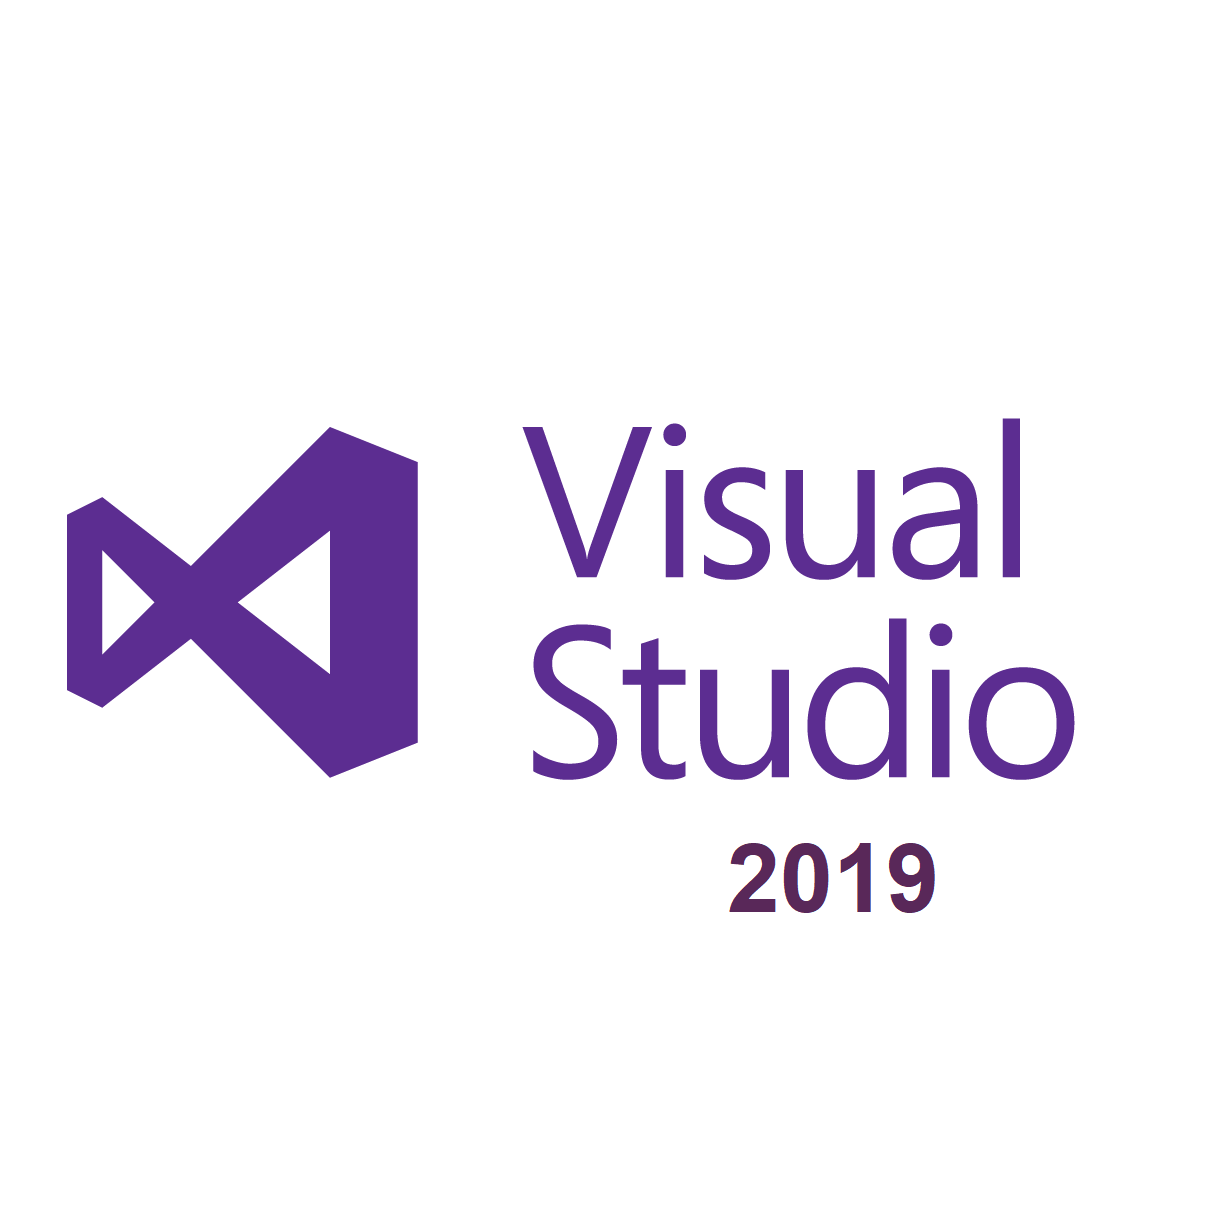 Visual Studio 2019 Crack Final with Product Key All Editions